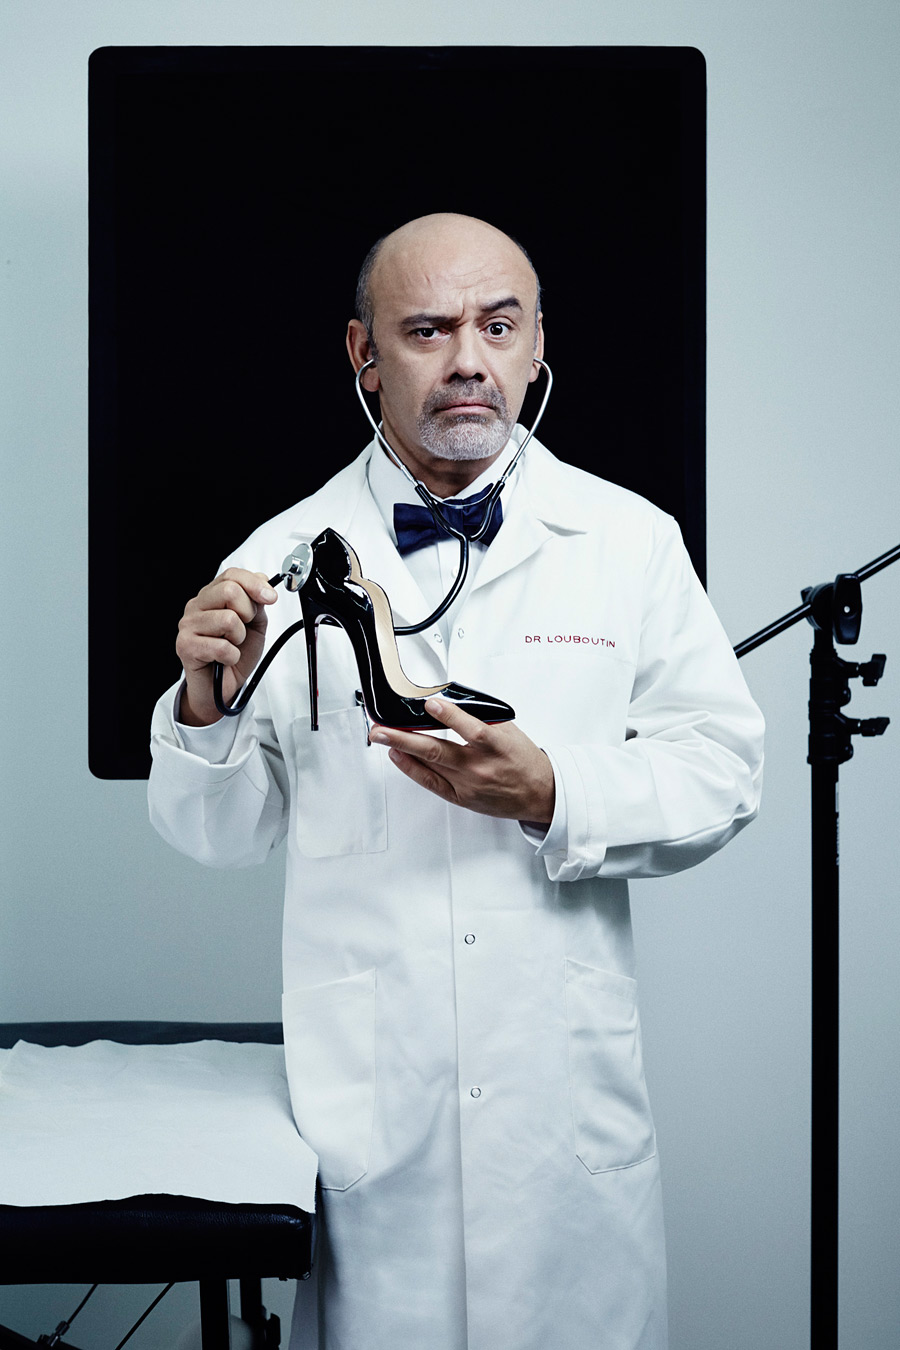 Christian Louboutin by René Habermacher for Paris Is Dead